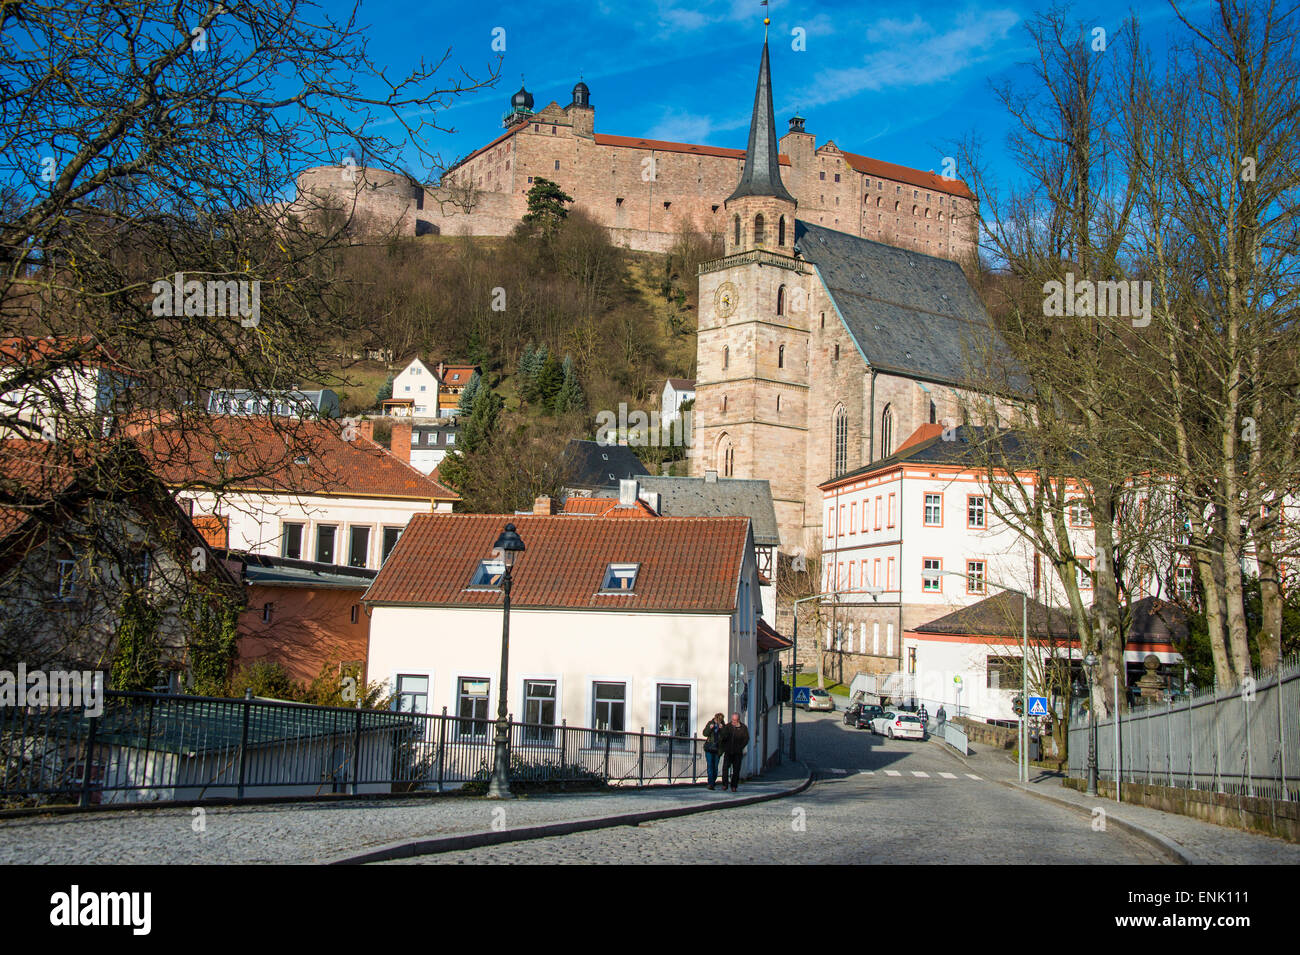 Renaissance castle of Plassenburg with church of St..Petri in the foreground, Kulmbach, Upper Franconia, Bavaria, - Stock Image